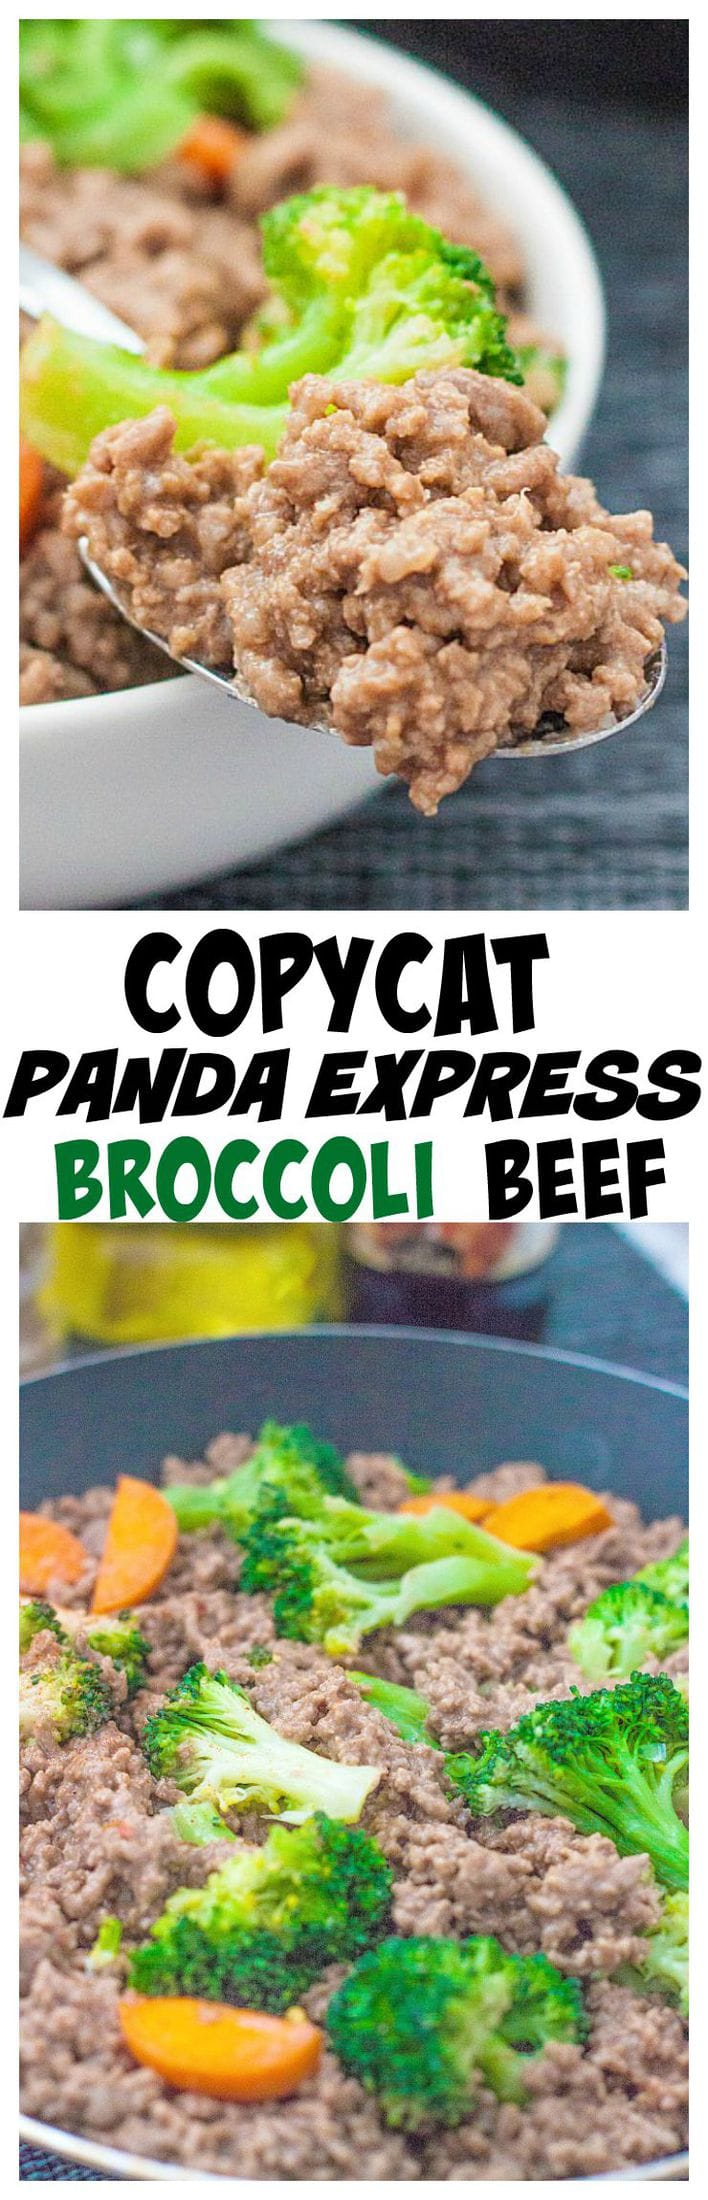 Copycat Panda Express Broccoli Beef using ground meat instead- Cost effective, healthy and paleo friendly too!